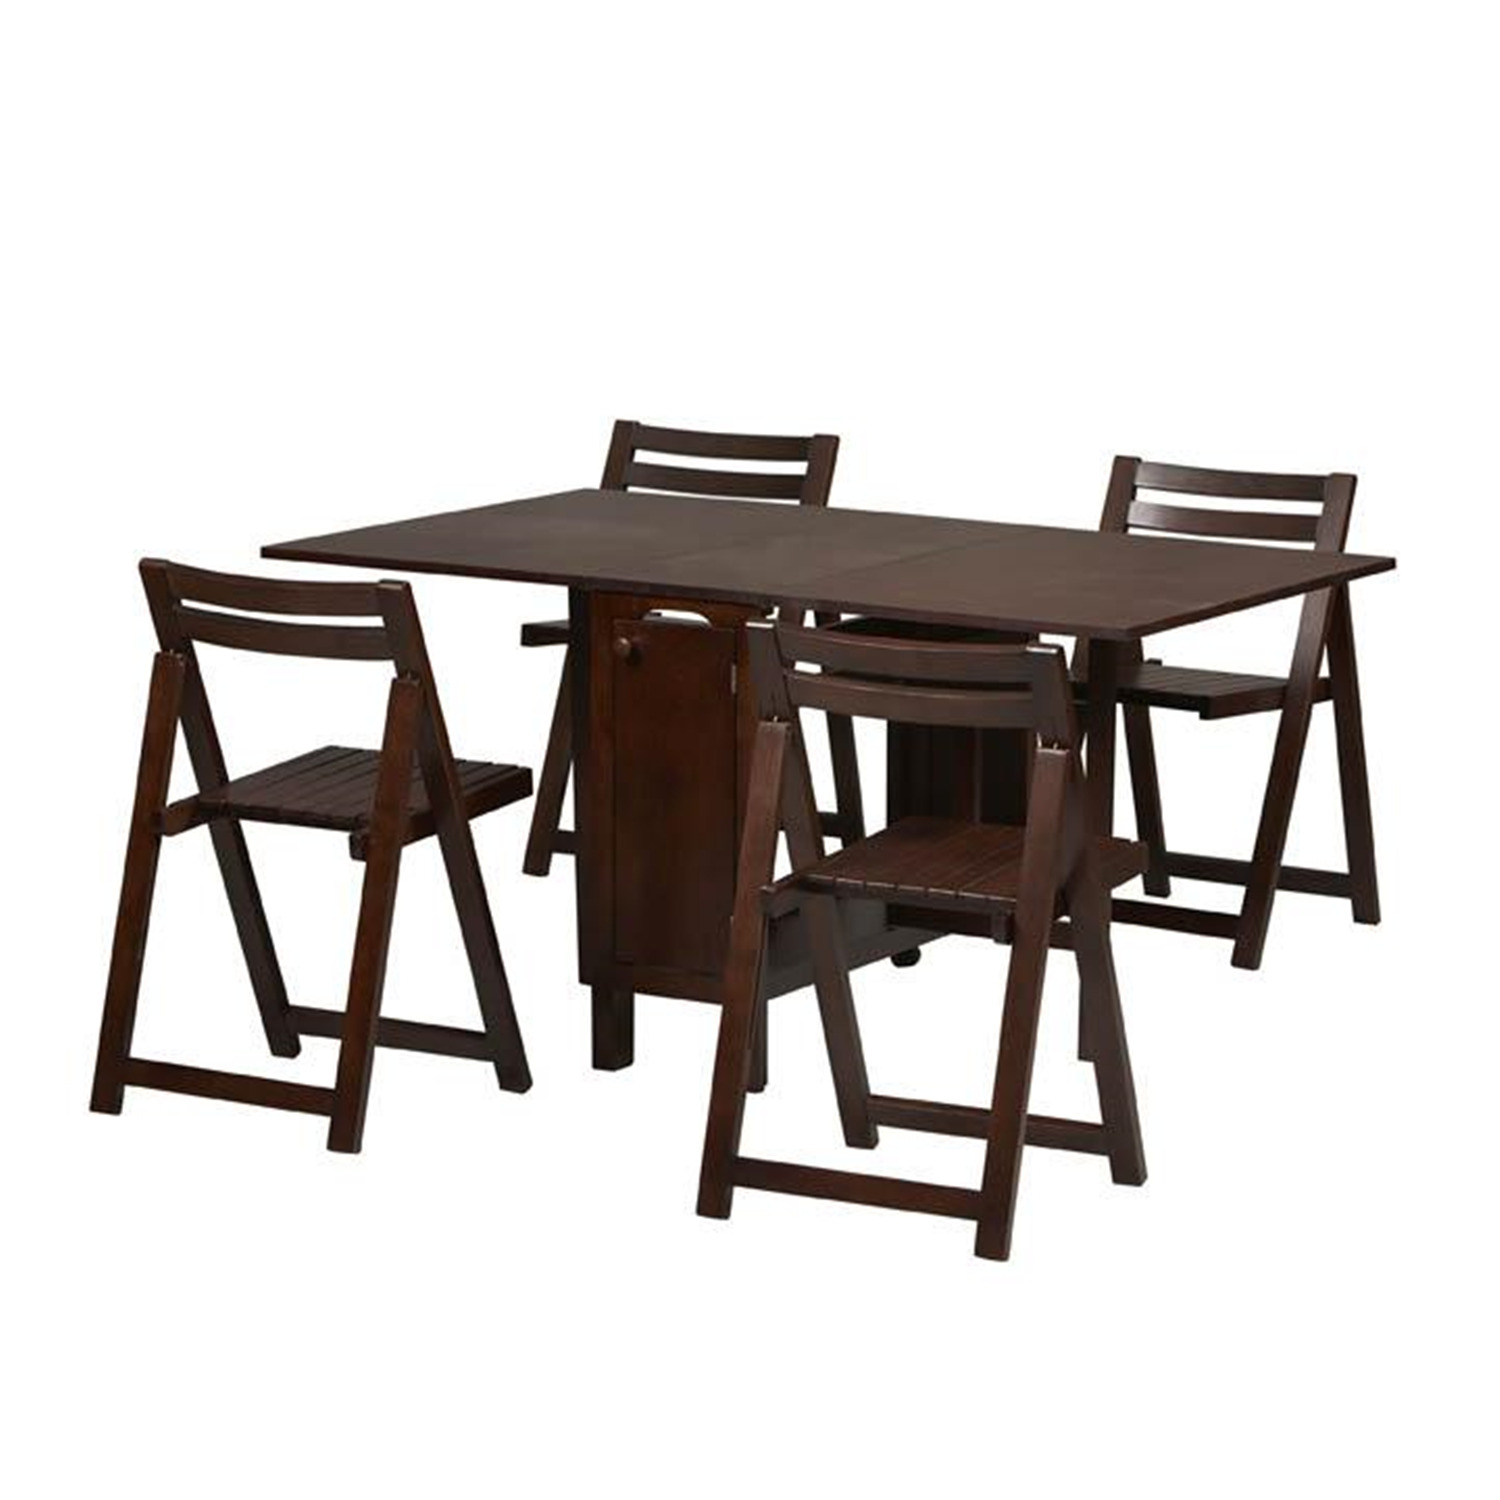 Space Saver Dining Set With Table And 4 Chairs 413 99